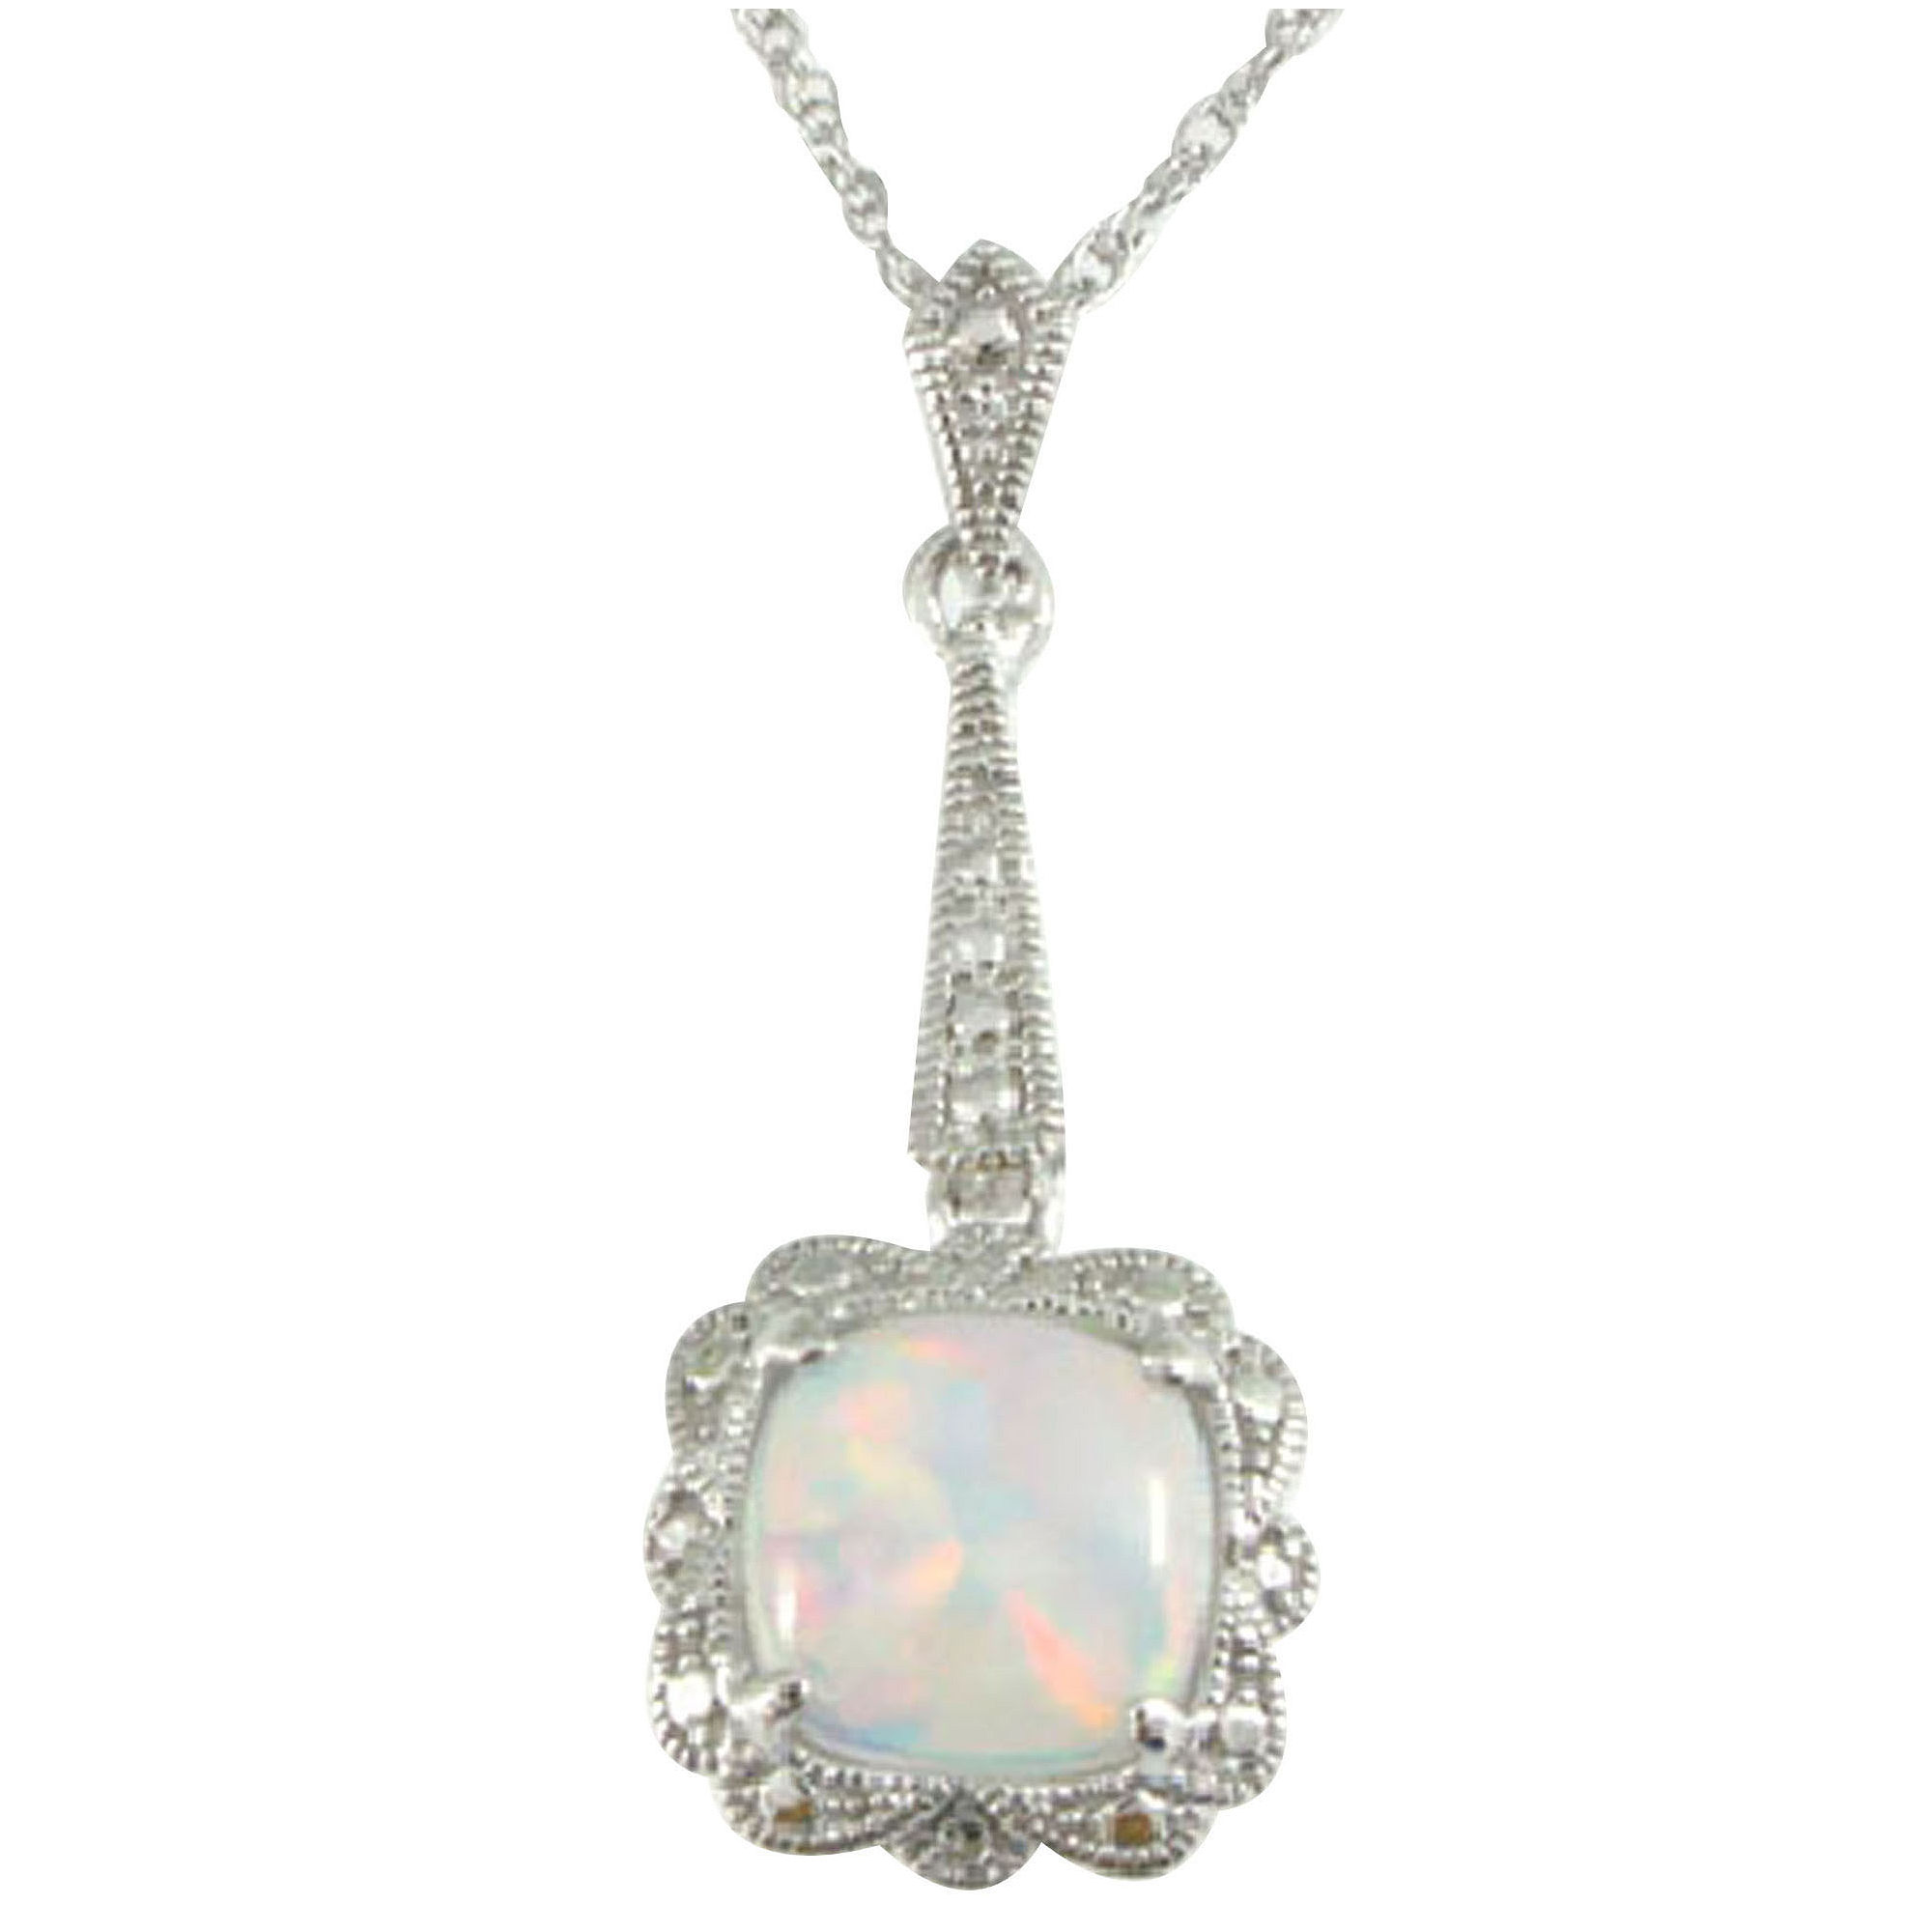 Vintage-Look Lab-Created Opal Pendant Necklace